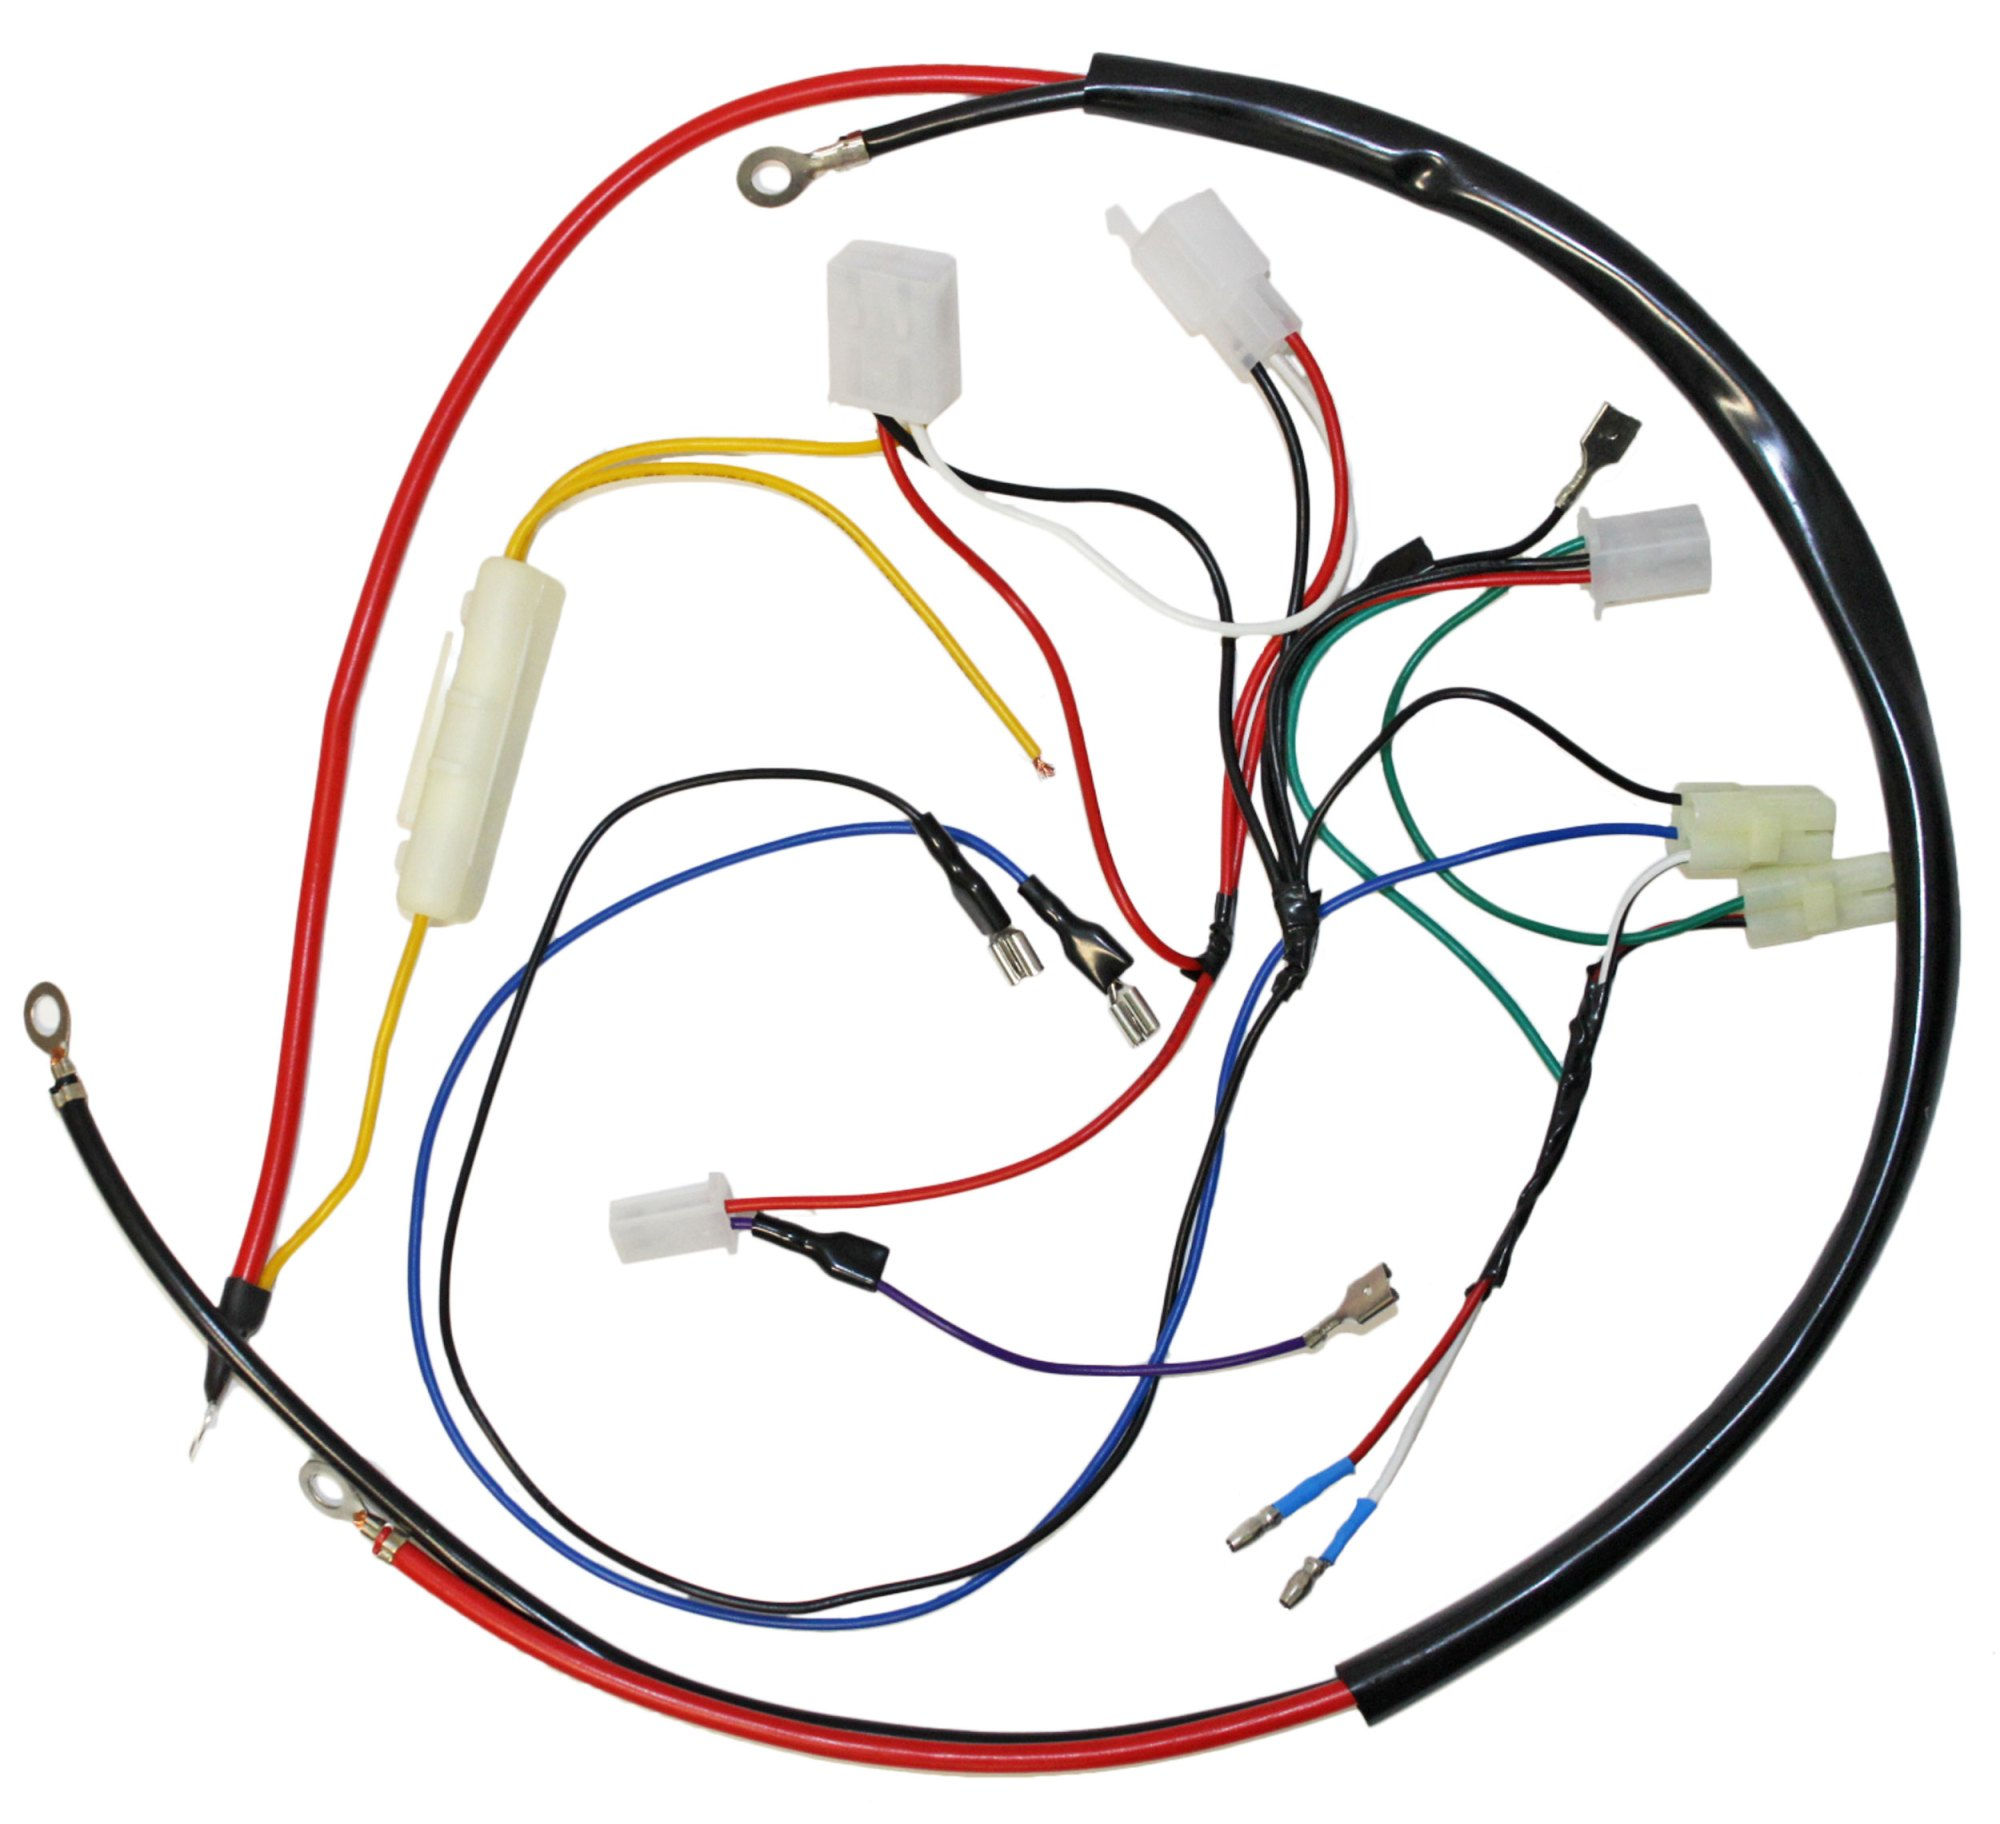 hight resolution of engine wiring harness for gy6 150cc engine 05711a bmi karts and gy6 150 wiring harness